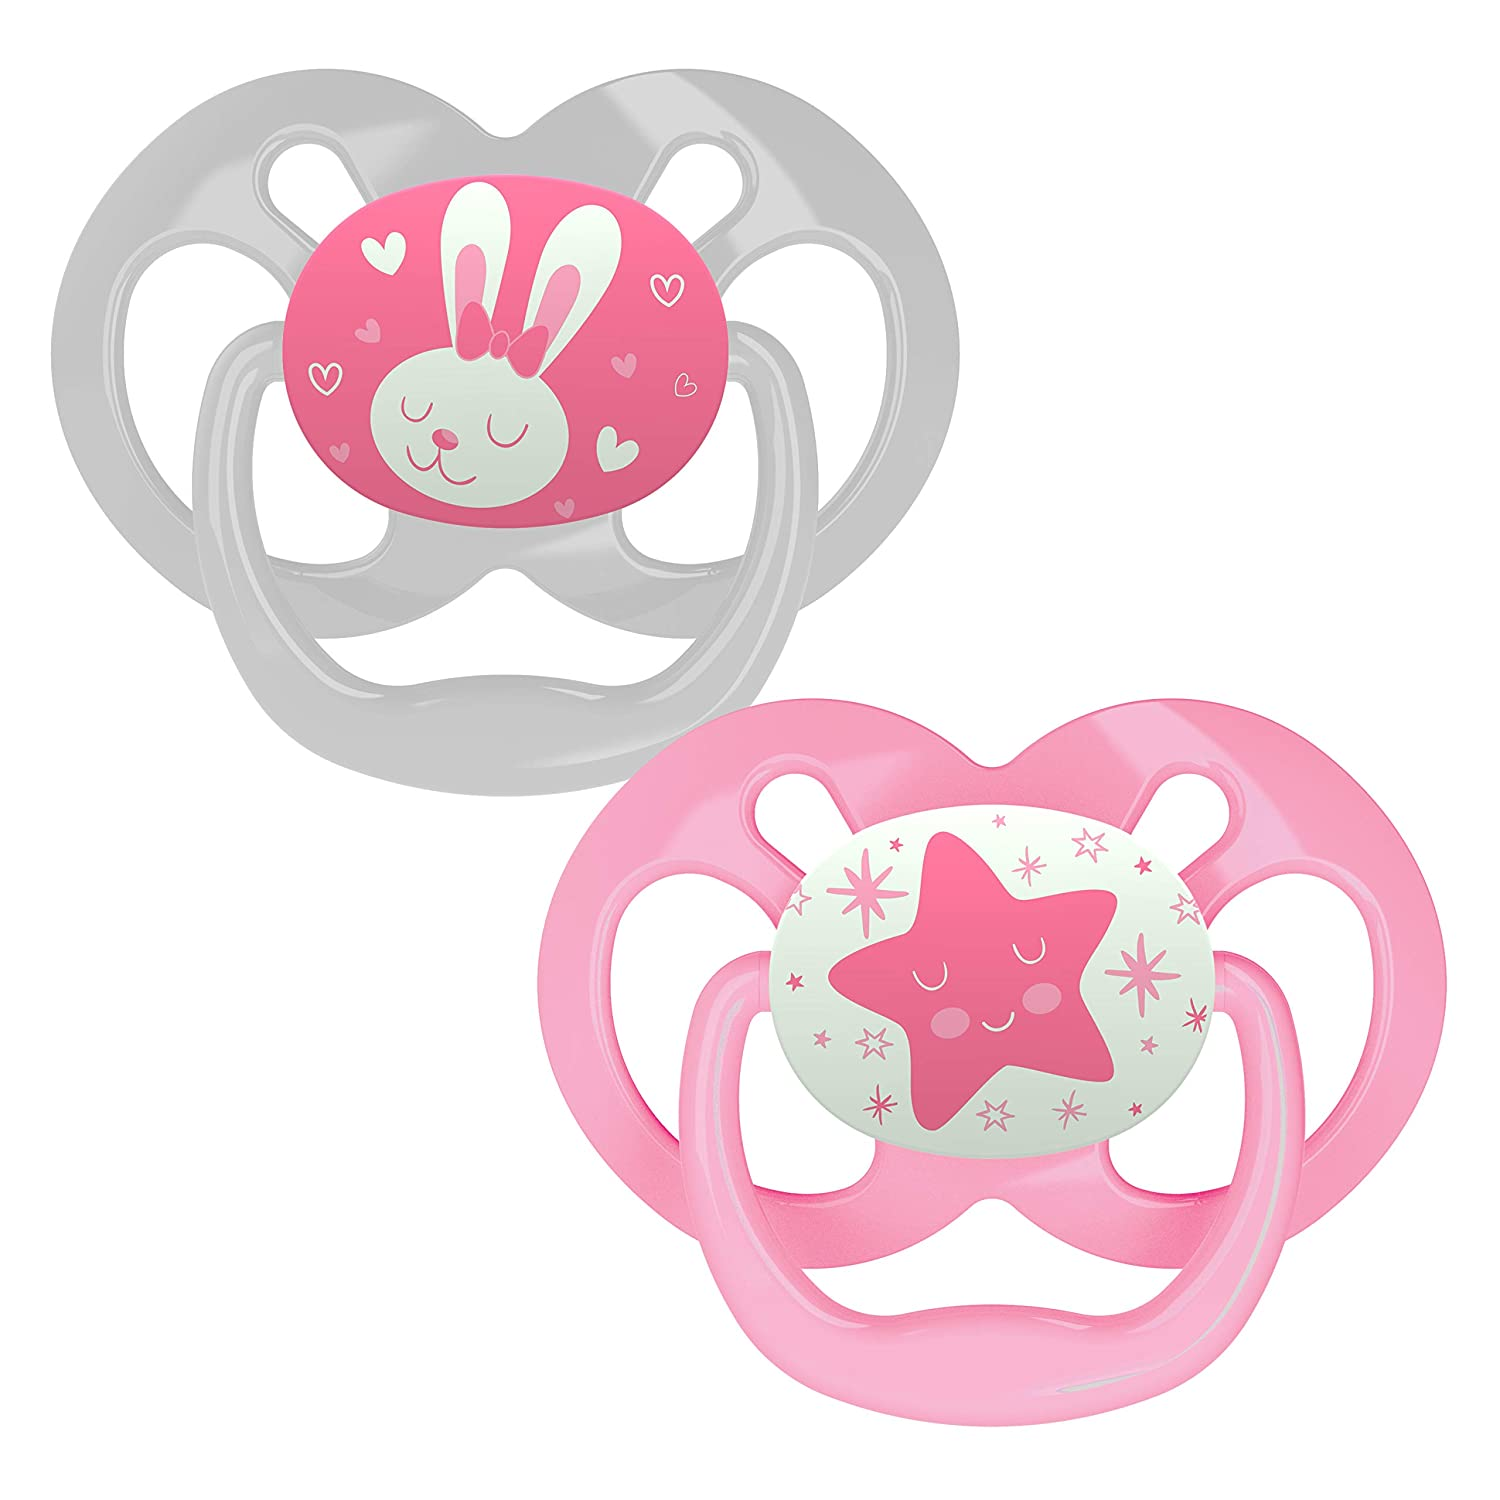 Dr. Browns Advantage Glow-in-The-Dark 2 Piece Stage 2 Pacifiers, Pink, 6-12 Months